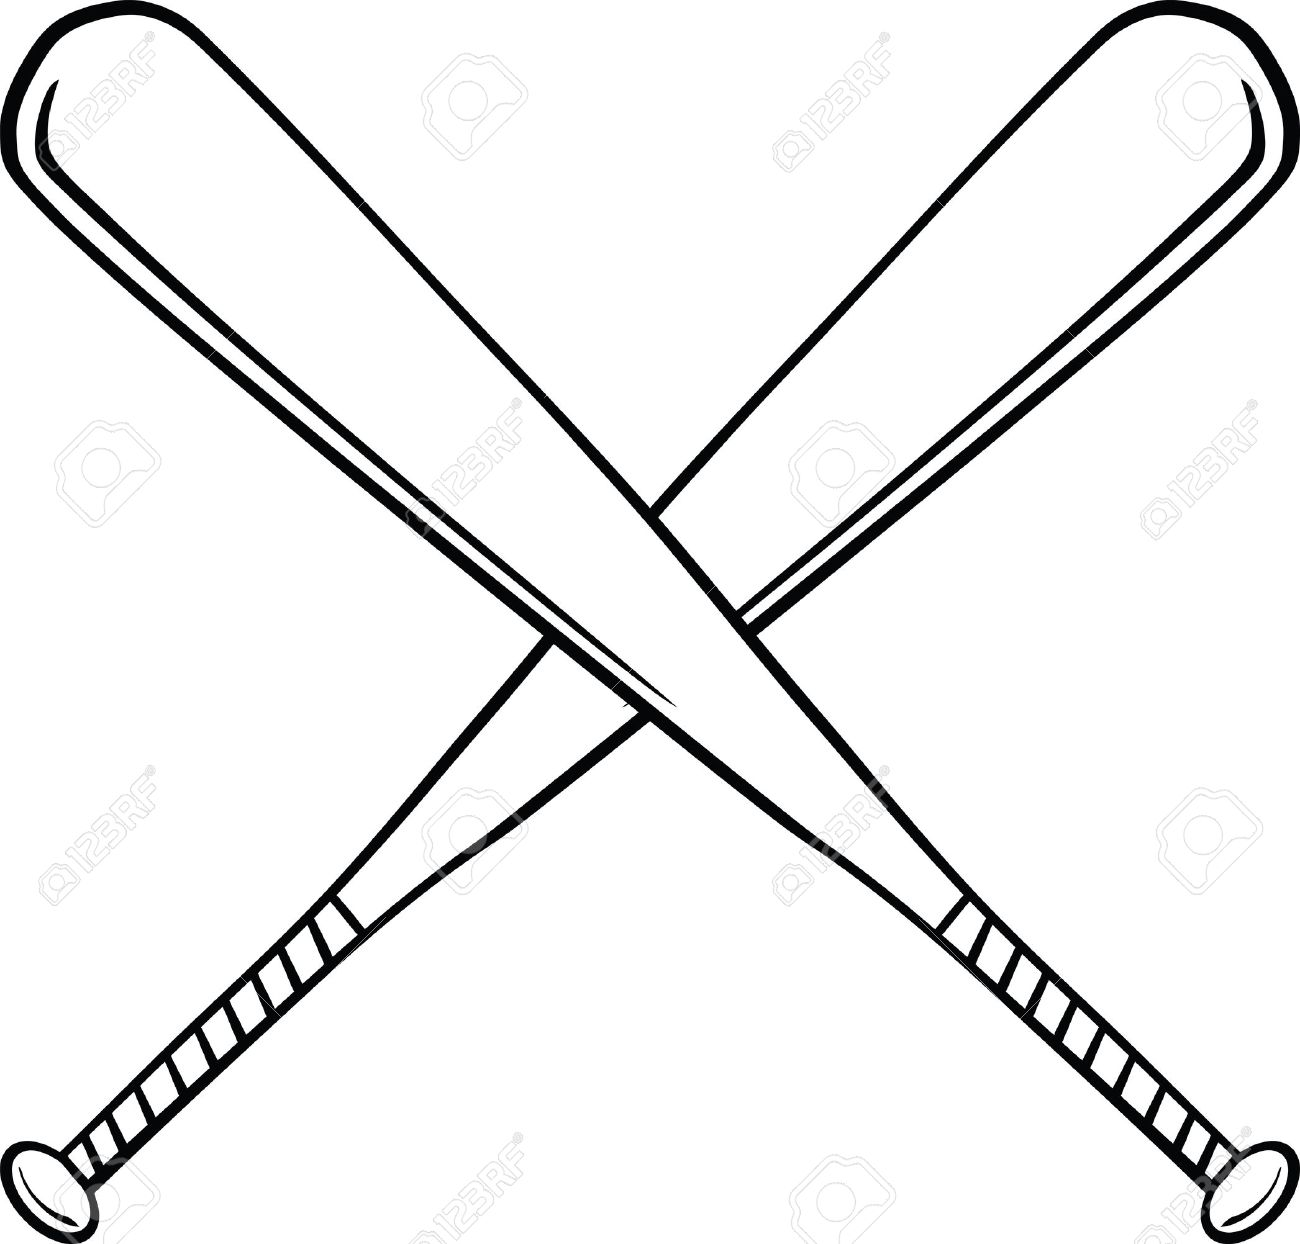 black and white crossed baseball bats illustration isolated rh 123rf com Baseball Bat Cartoon Baseball Bats Cross Clip Art Religious